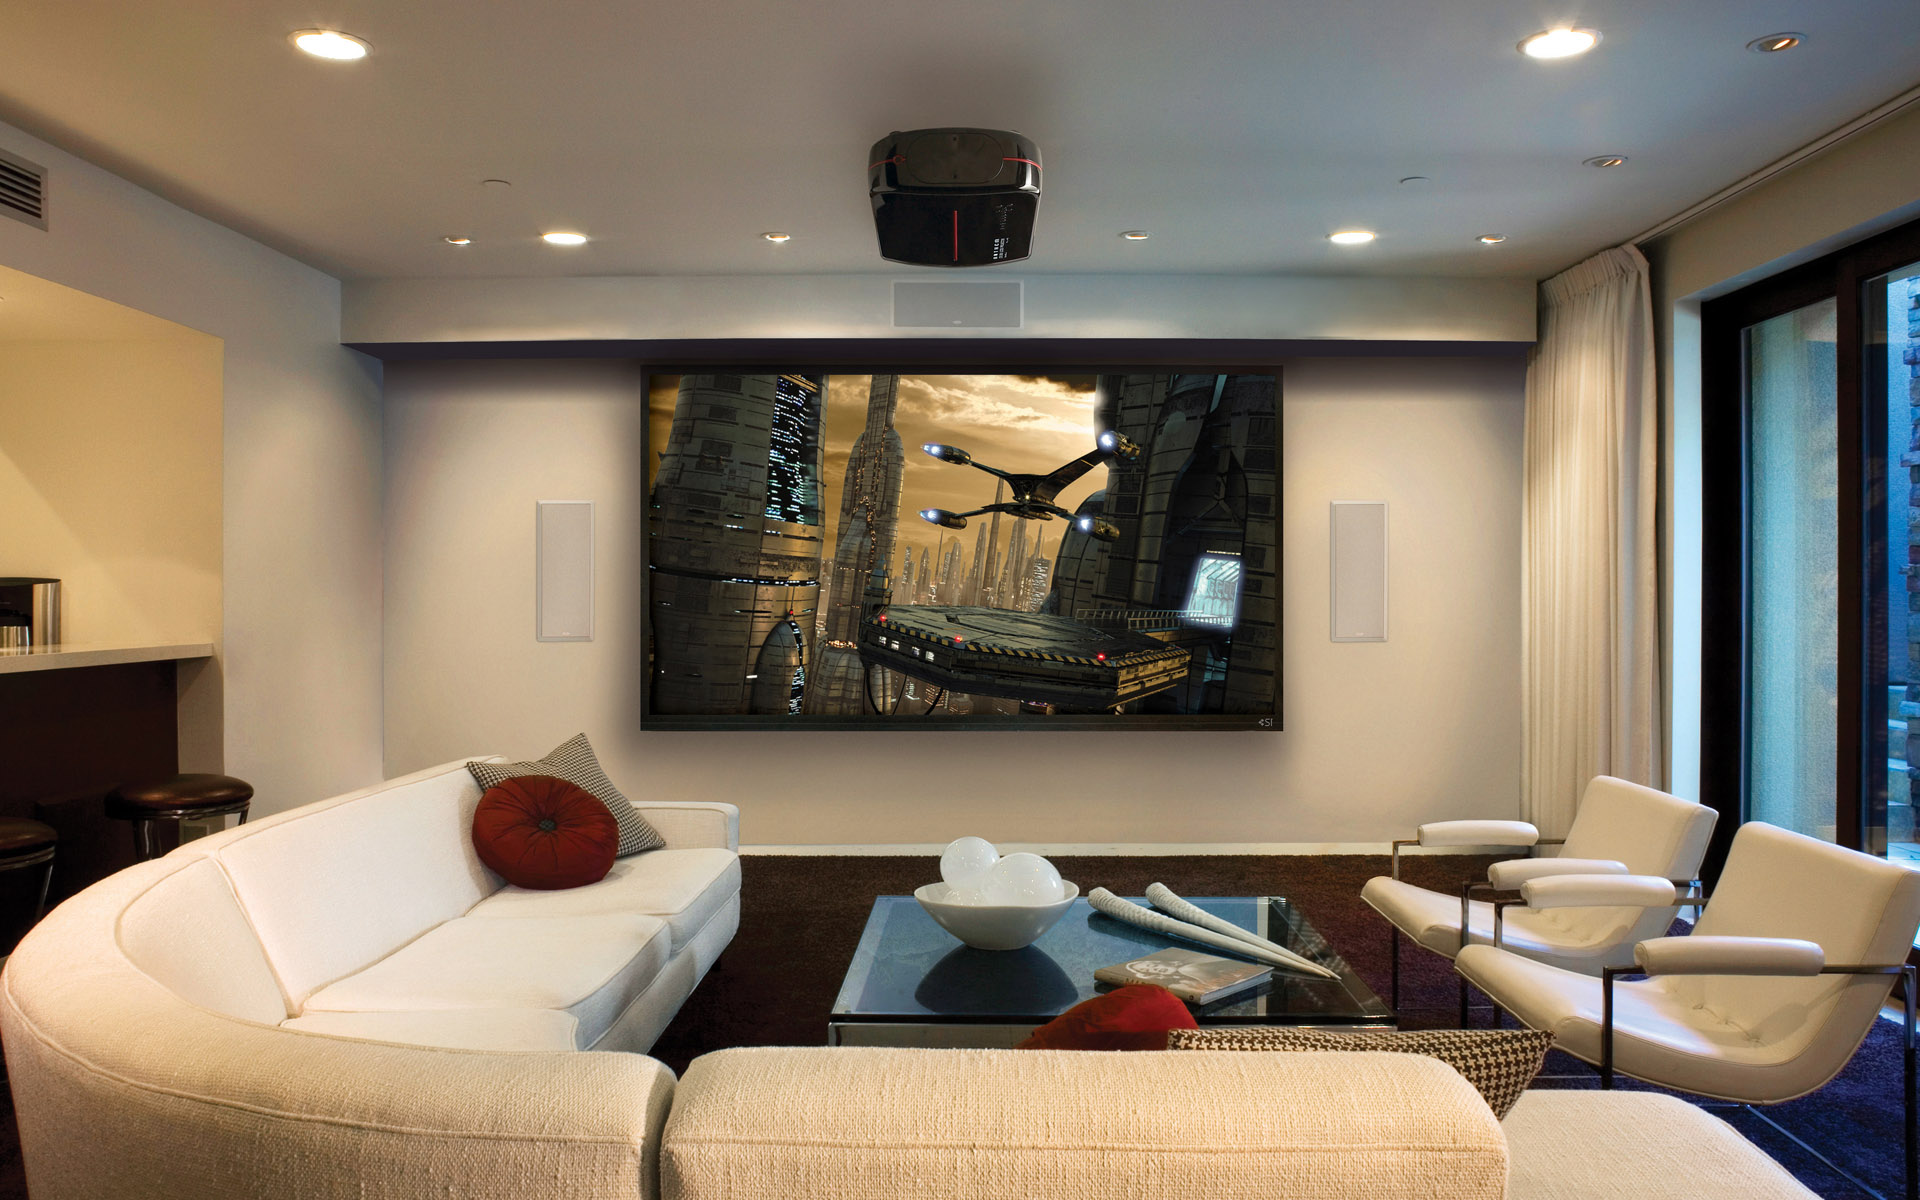 living room theaters enjoy leisure times with living room theater YQHFDRX